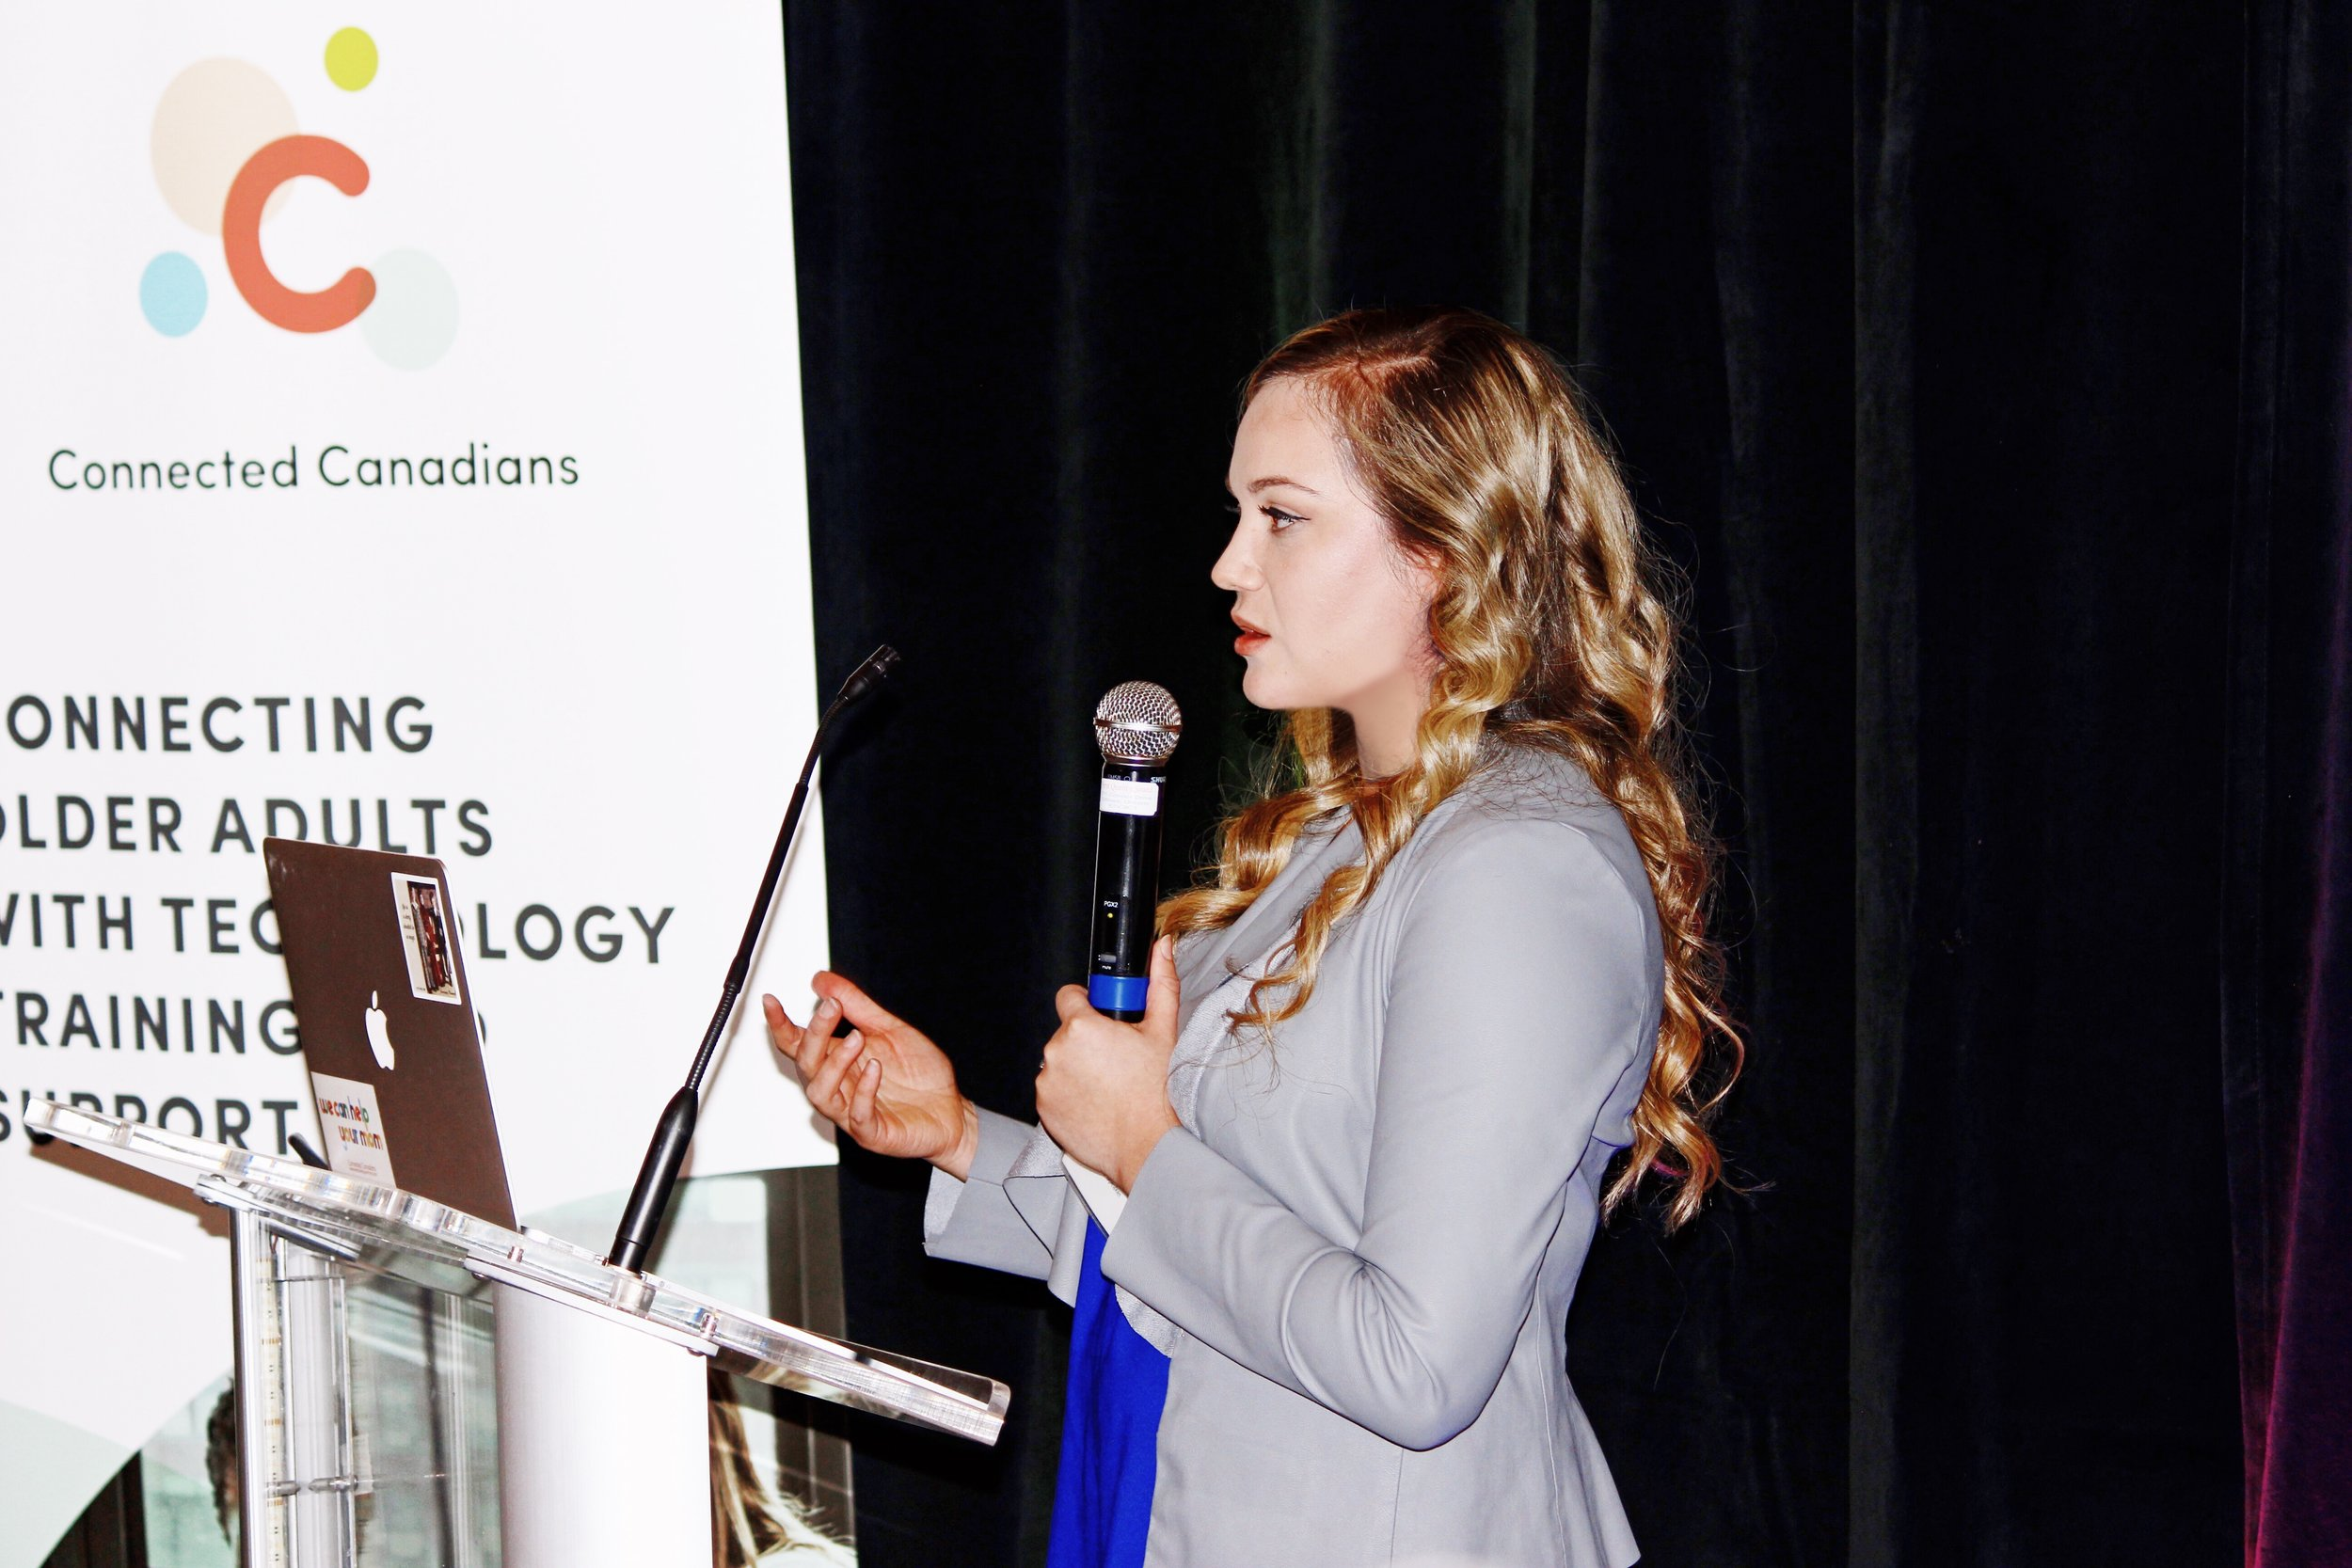 Connected Canadians Launch Event